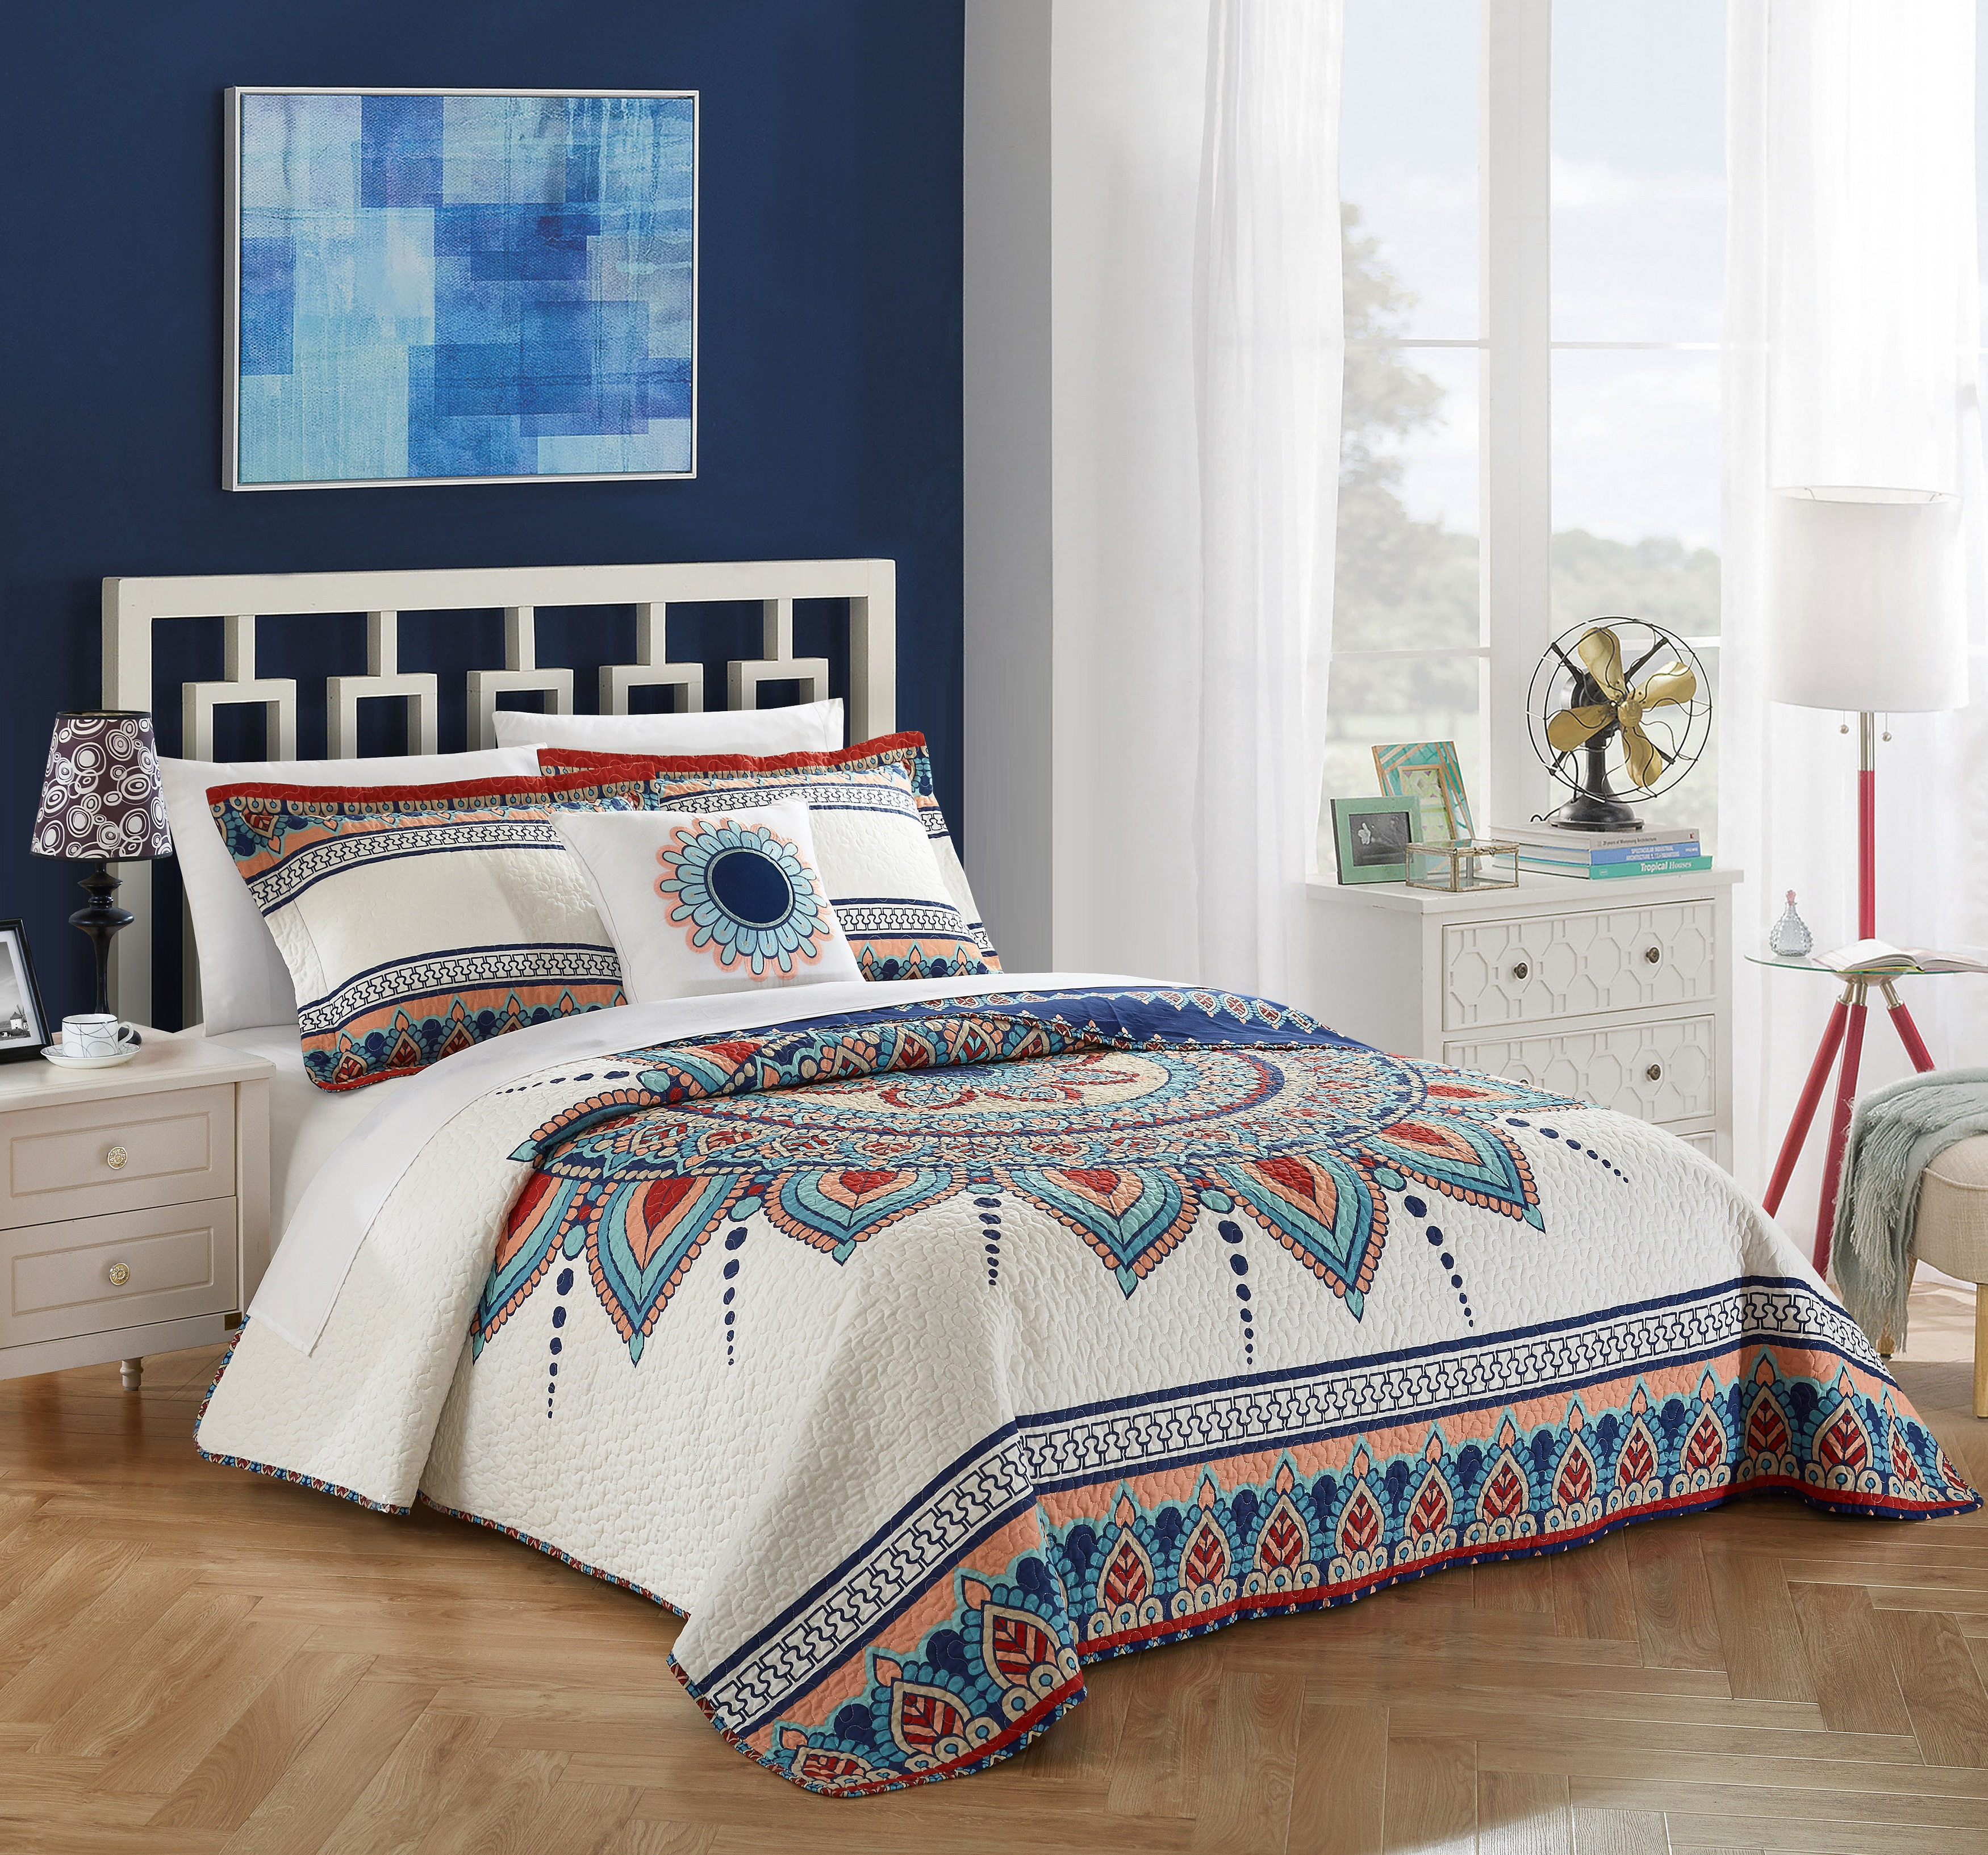 Chic Home 4-Piece Nolina 100% Cotton 200 Thread Count Extra Large Panel Frame Boho Printed REVERSIBLE Quilt Set - Blue